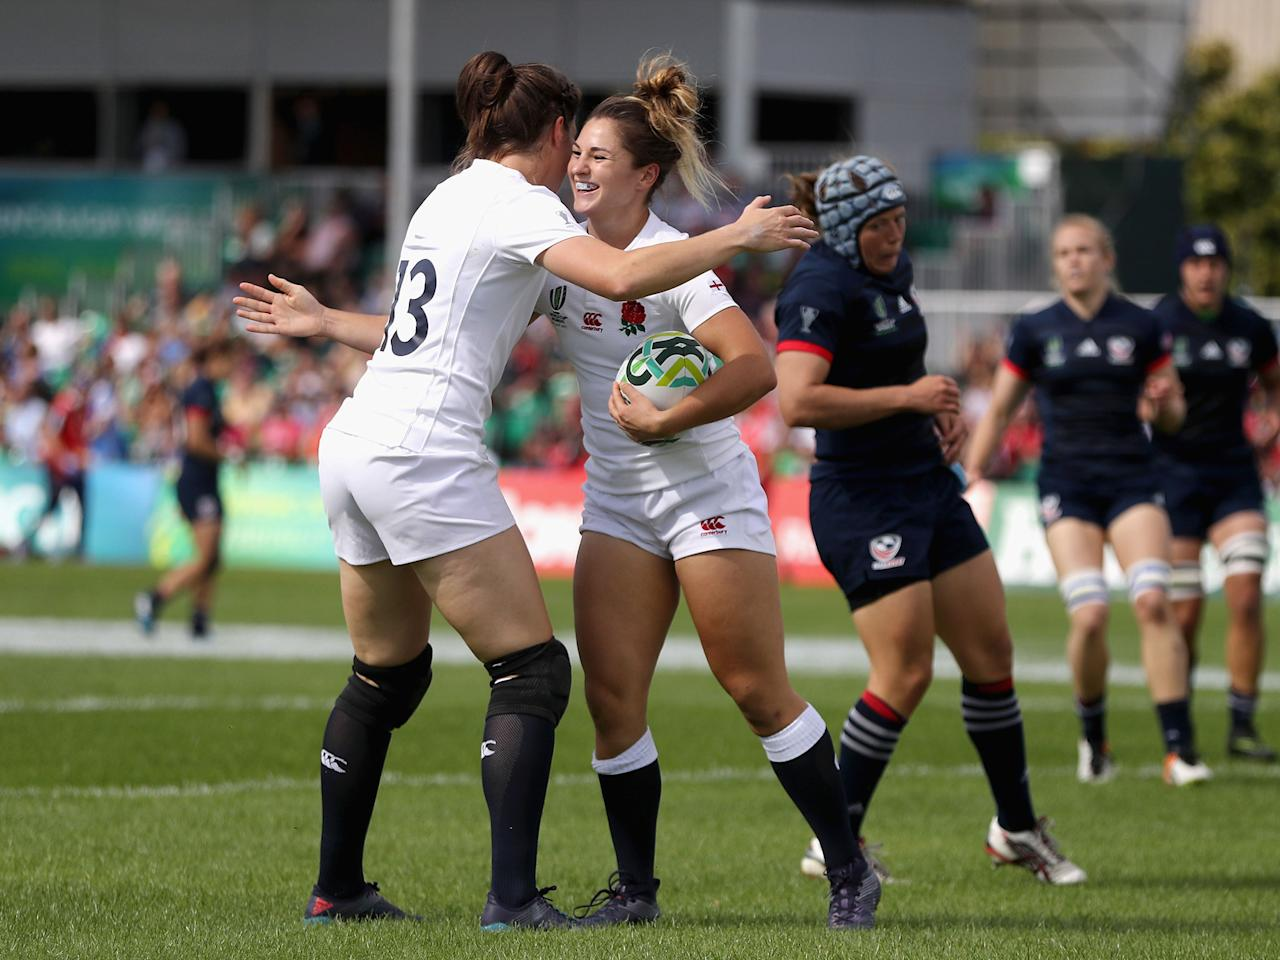 England power past USA in seven-try rout to reach World Cup semi-finals